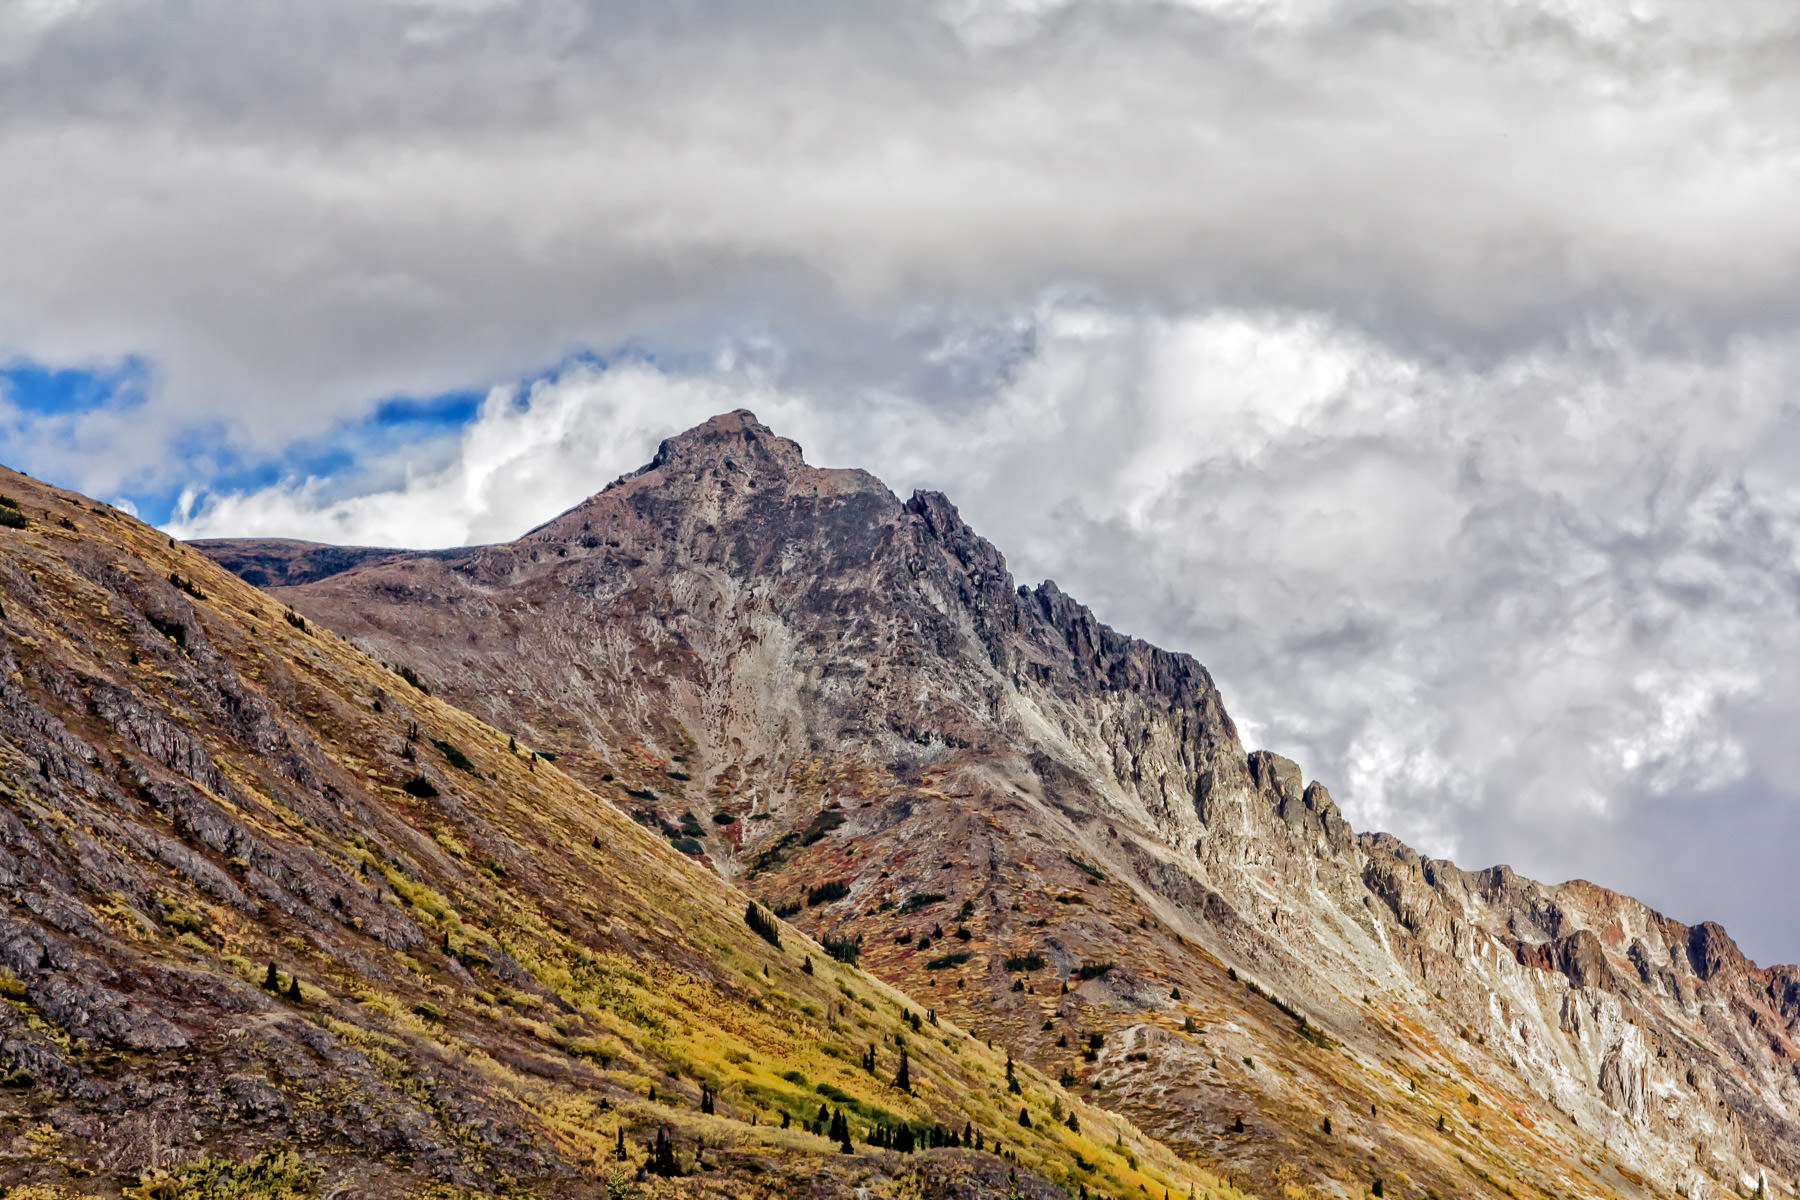 A rugged mountain top near the tiny village of Carcross, Yukon Territory, Canada.